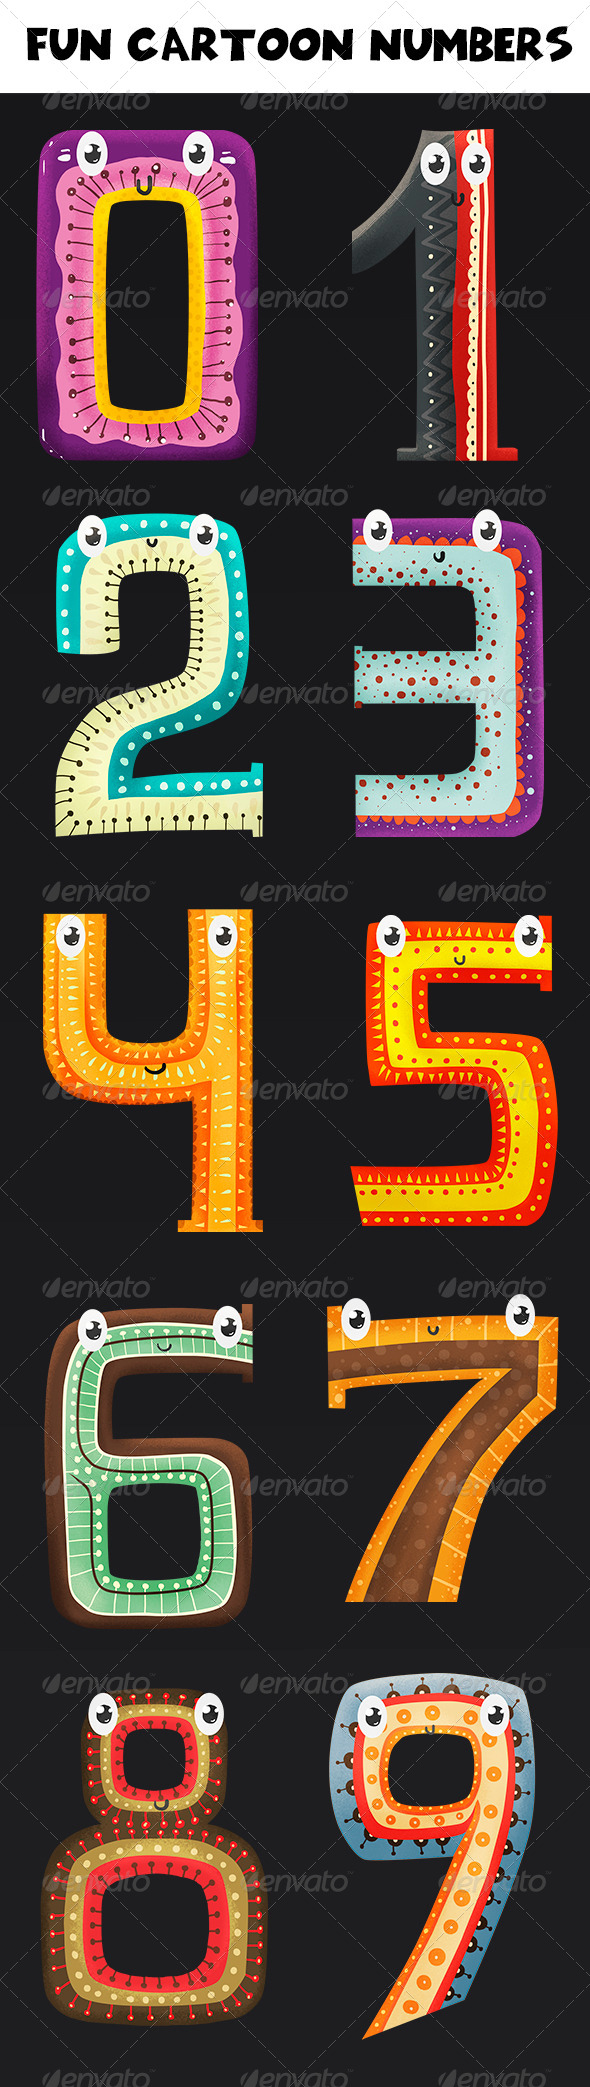 GraphicRiver Fun Cartoon Numbers 7450694